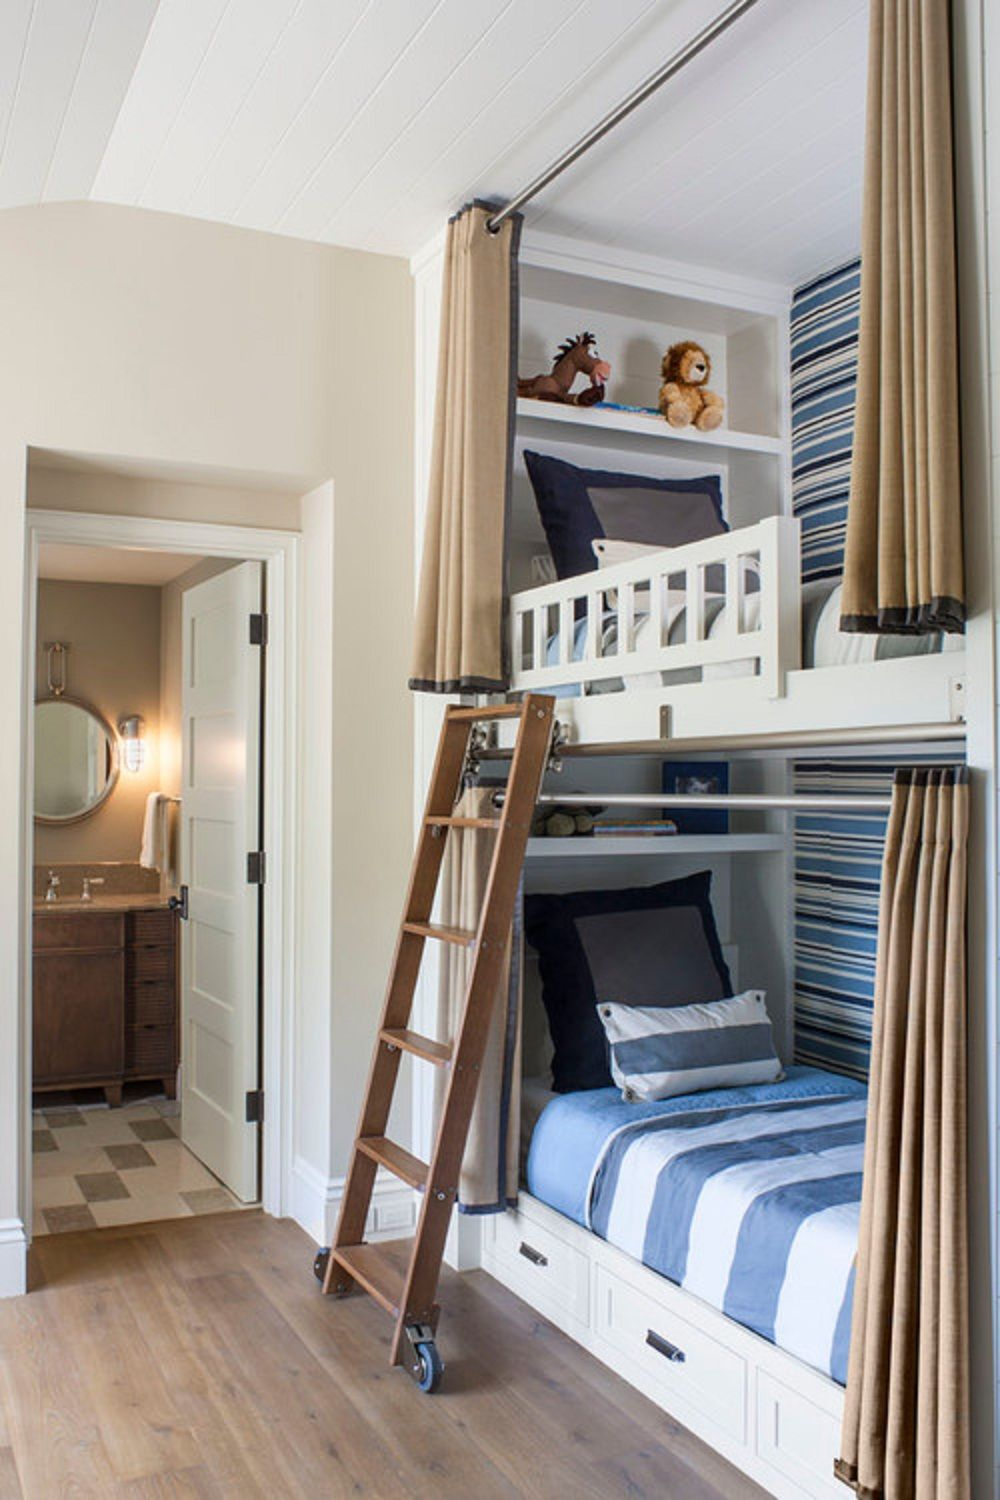 COOL BUNK BEDS: #coastal Themed Kids #bedroom With Sliding Curtain For  Privacy